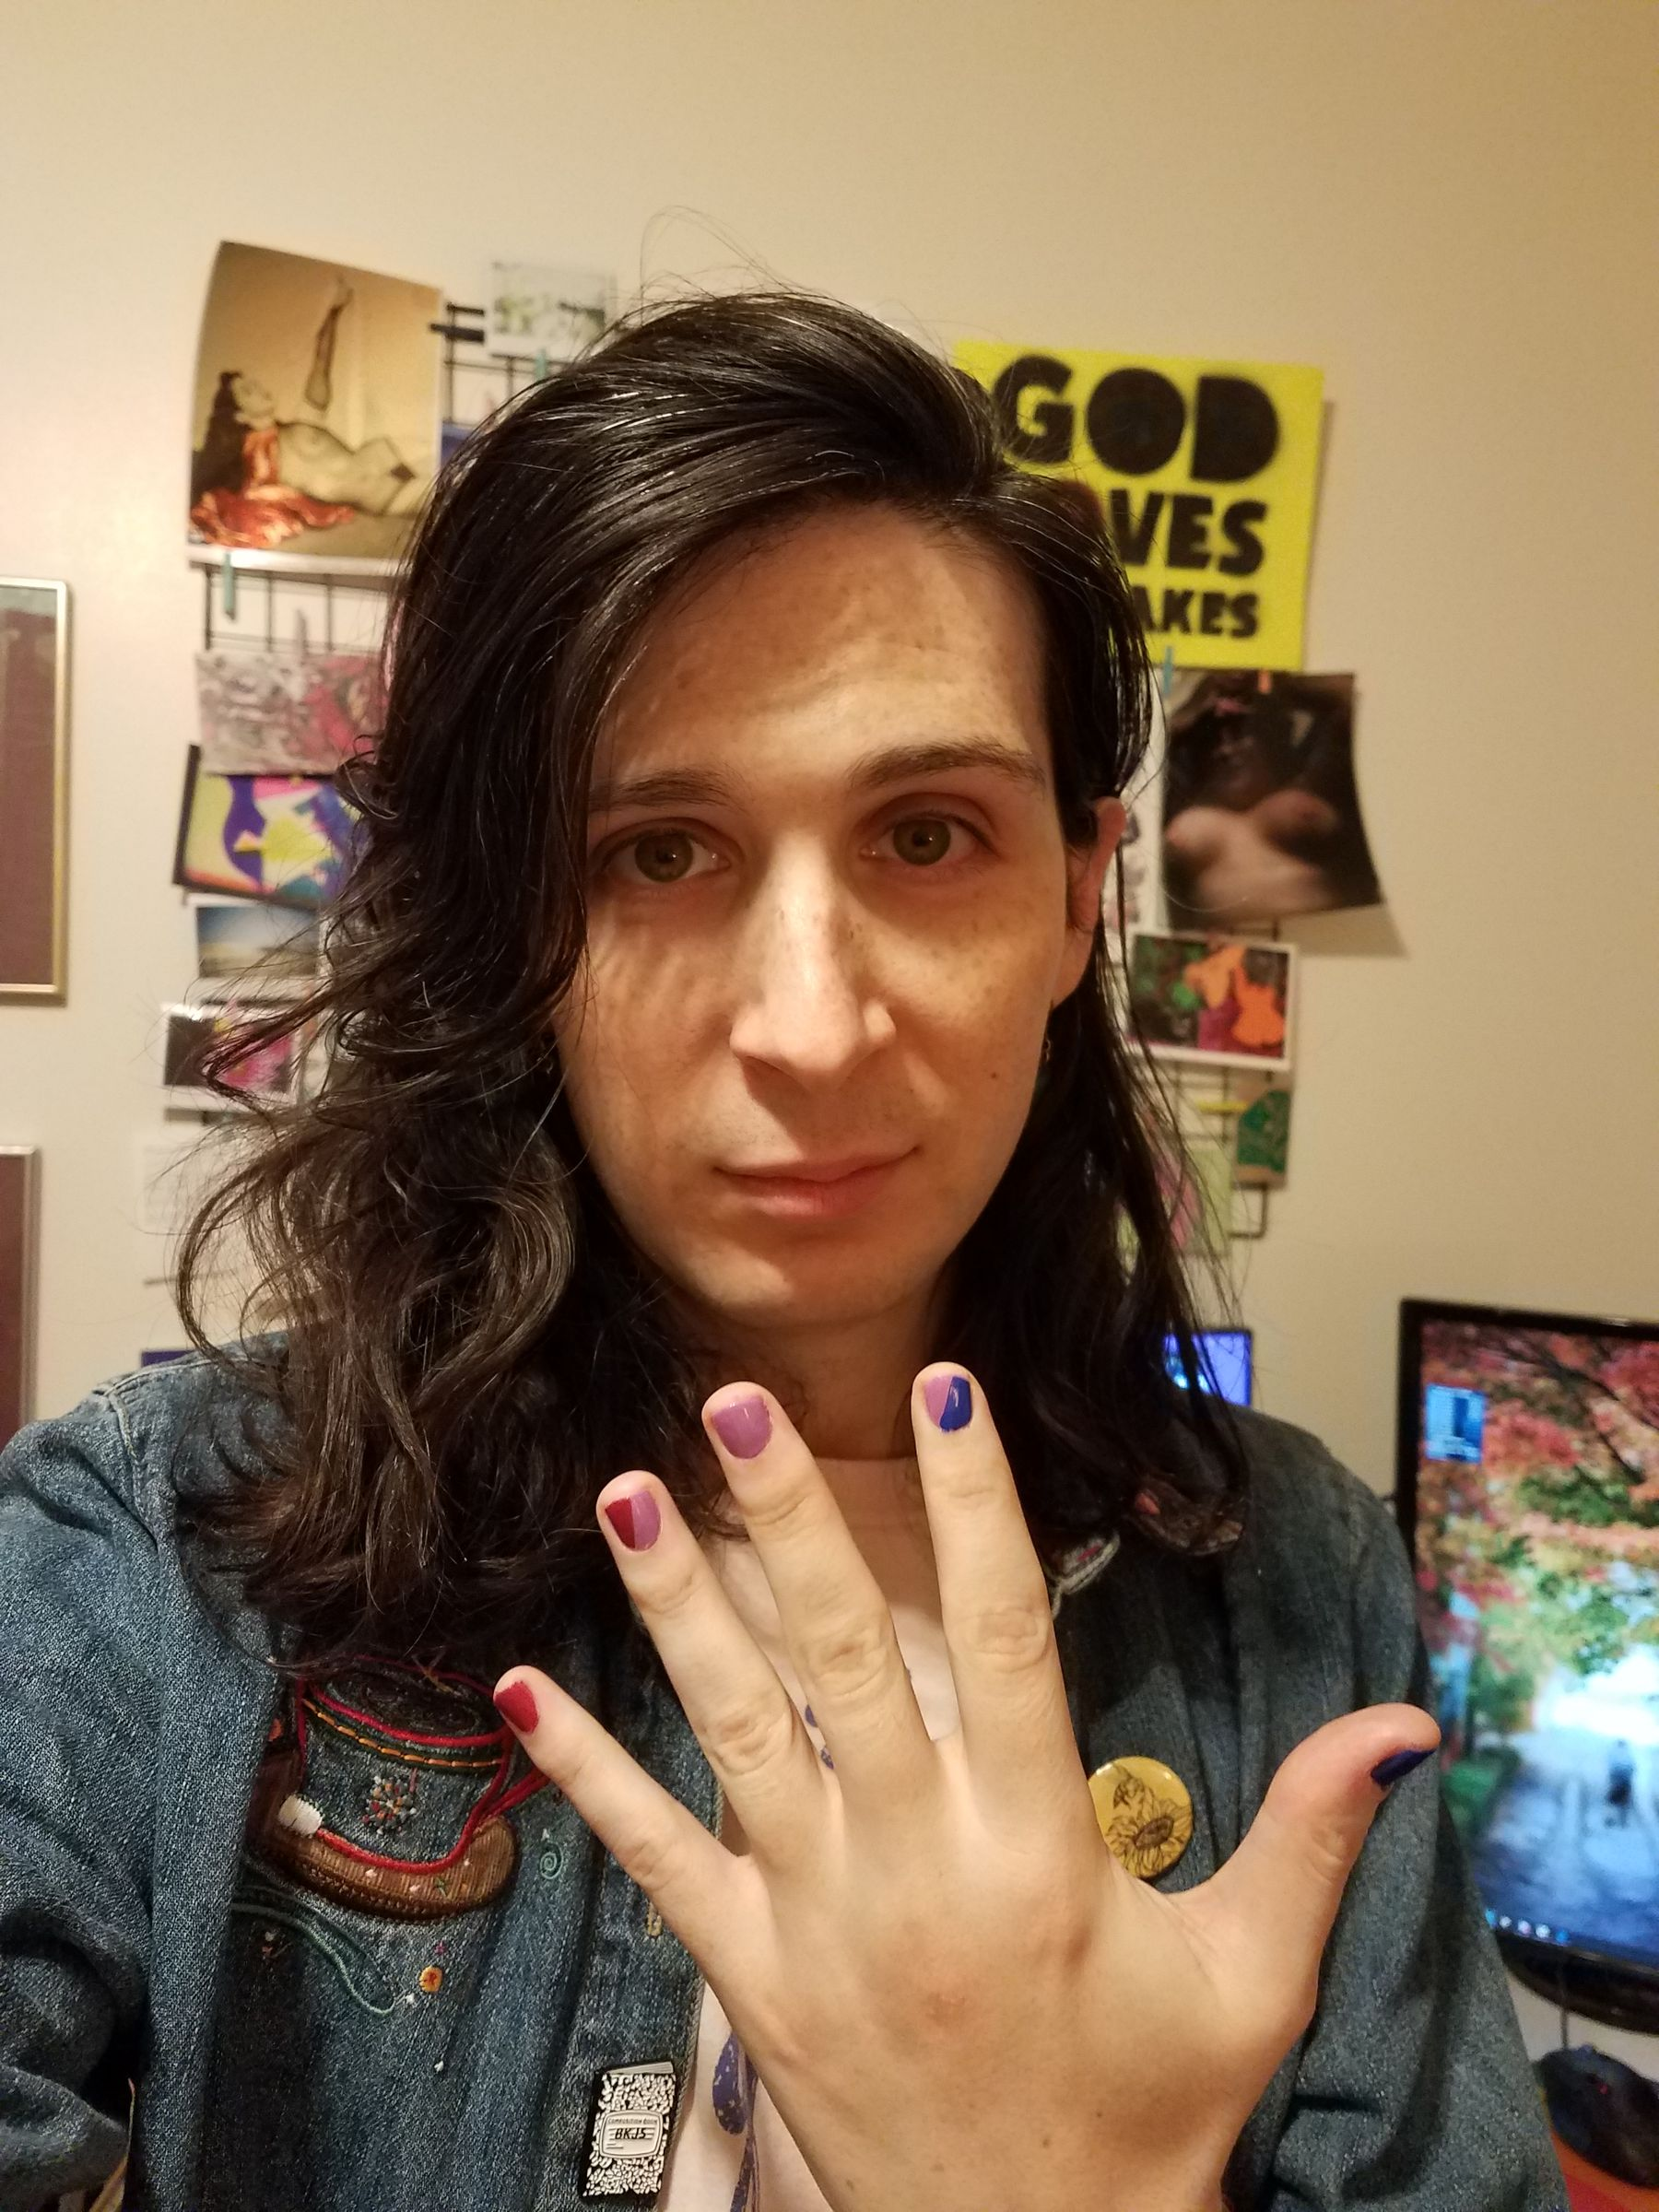 Indoor selfie of a white queer with shoulder length brown hair, holding their hand up to the camera to show off their nail polish in bi pride colors. In the background there's a computer monitor on a desk, and an art collage on the wall.